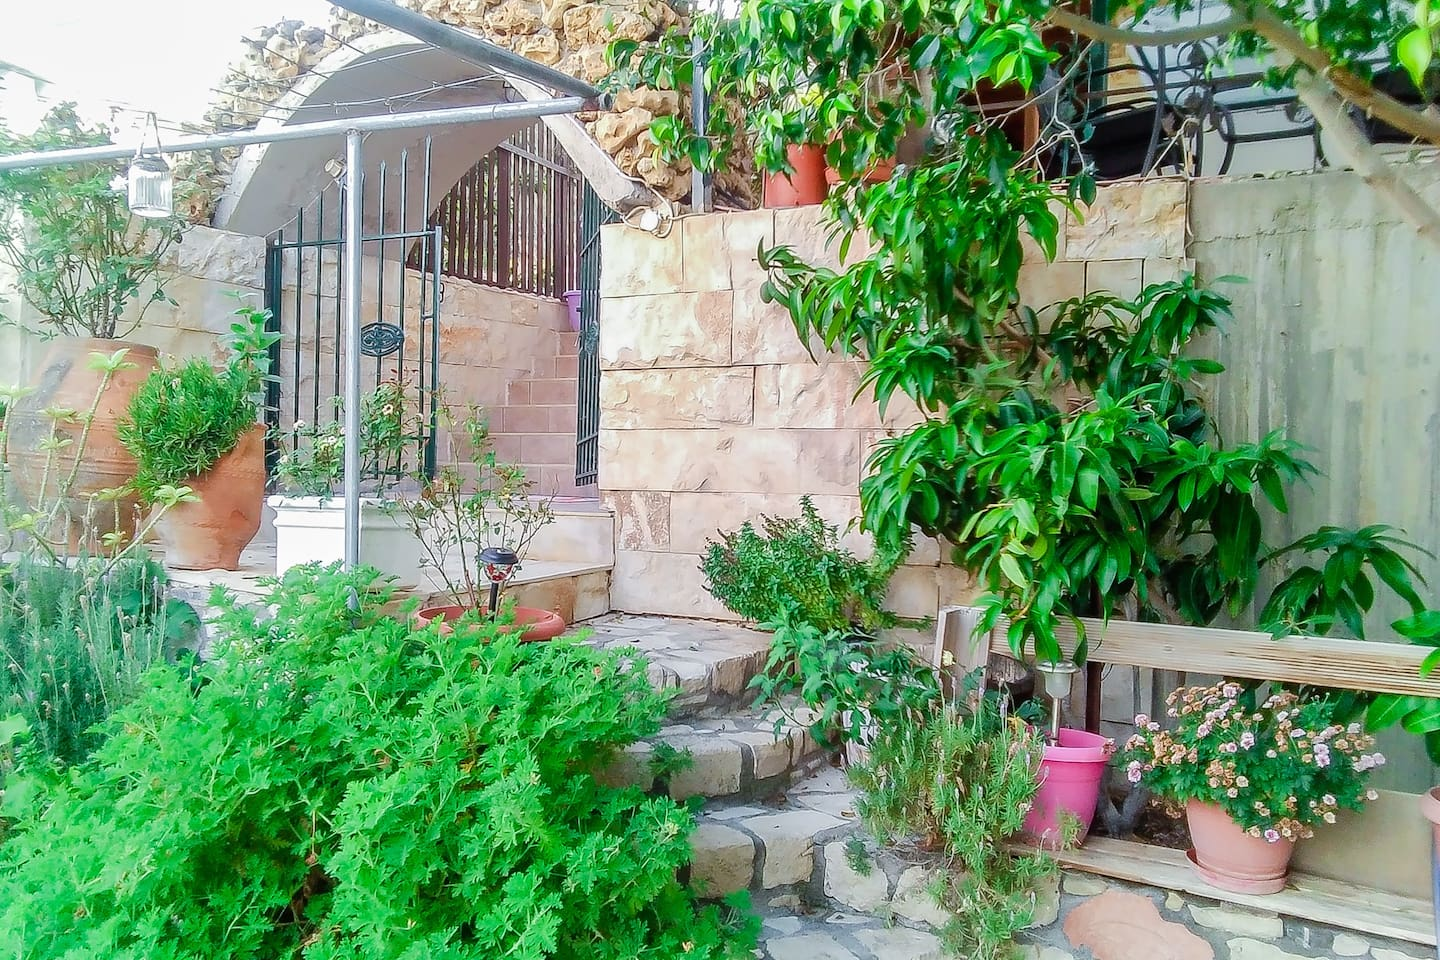 Garden Outdoor - Fully Furnished Seview House in Keratokampos Crete